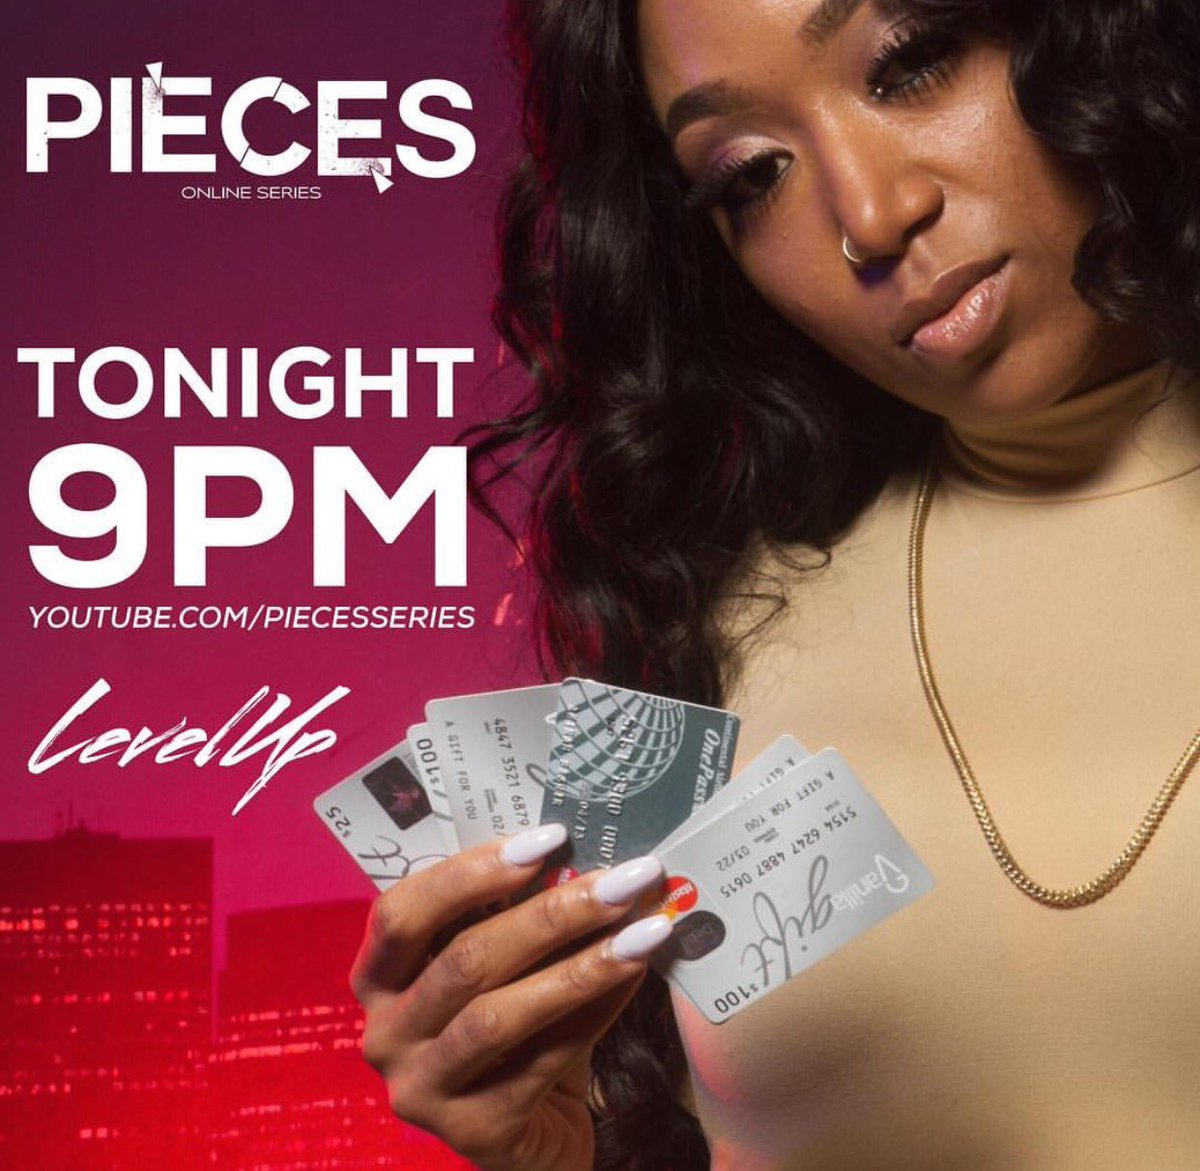 @PiecesSeries Returns tonite... Season 3. #PiecesSeries #Pieces #LevelUp #SeasonThree https://t.co/QjTT02xUAB